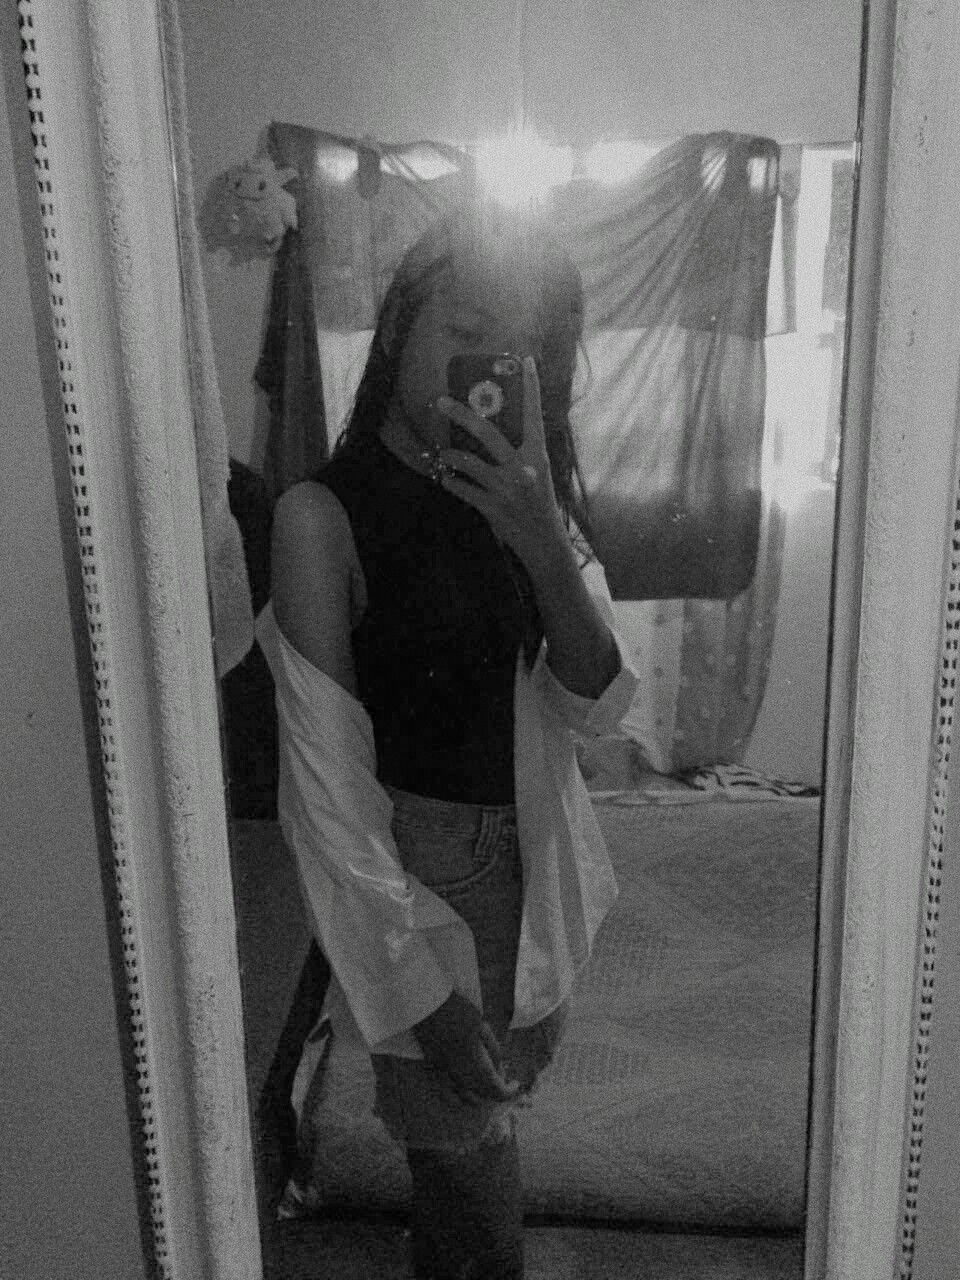 B&W #mirrorselfie #mirrorselfiepose #pose #selfie